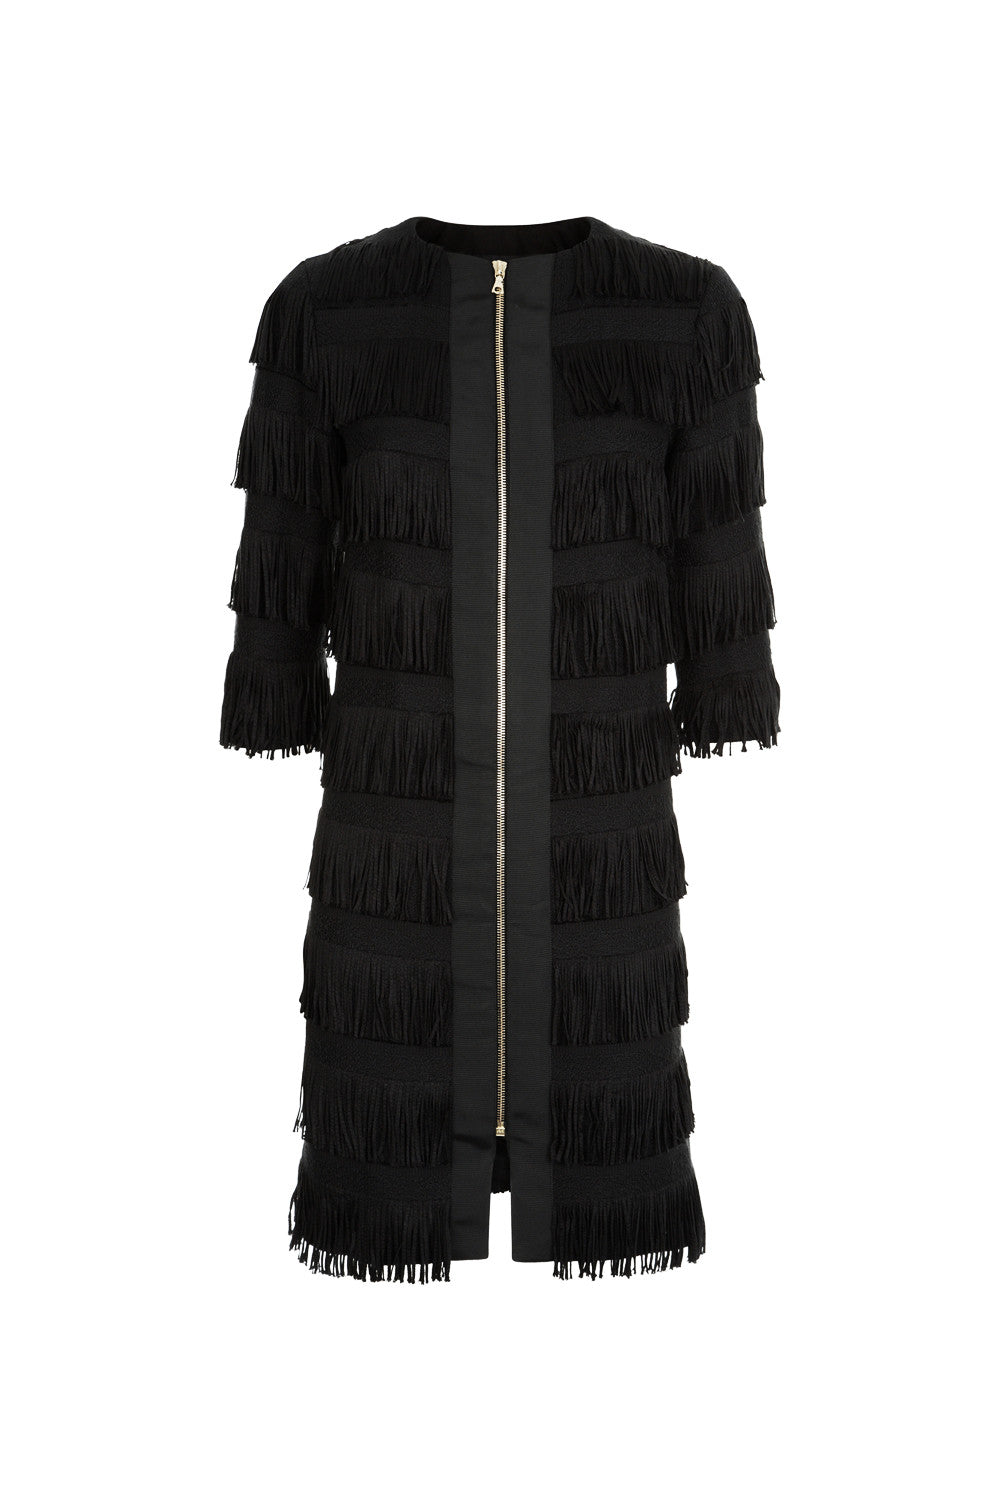 Gianna Coat - Black - Womenswear Outlet - Madderson London